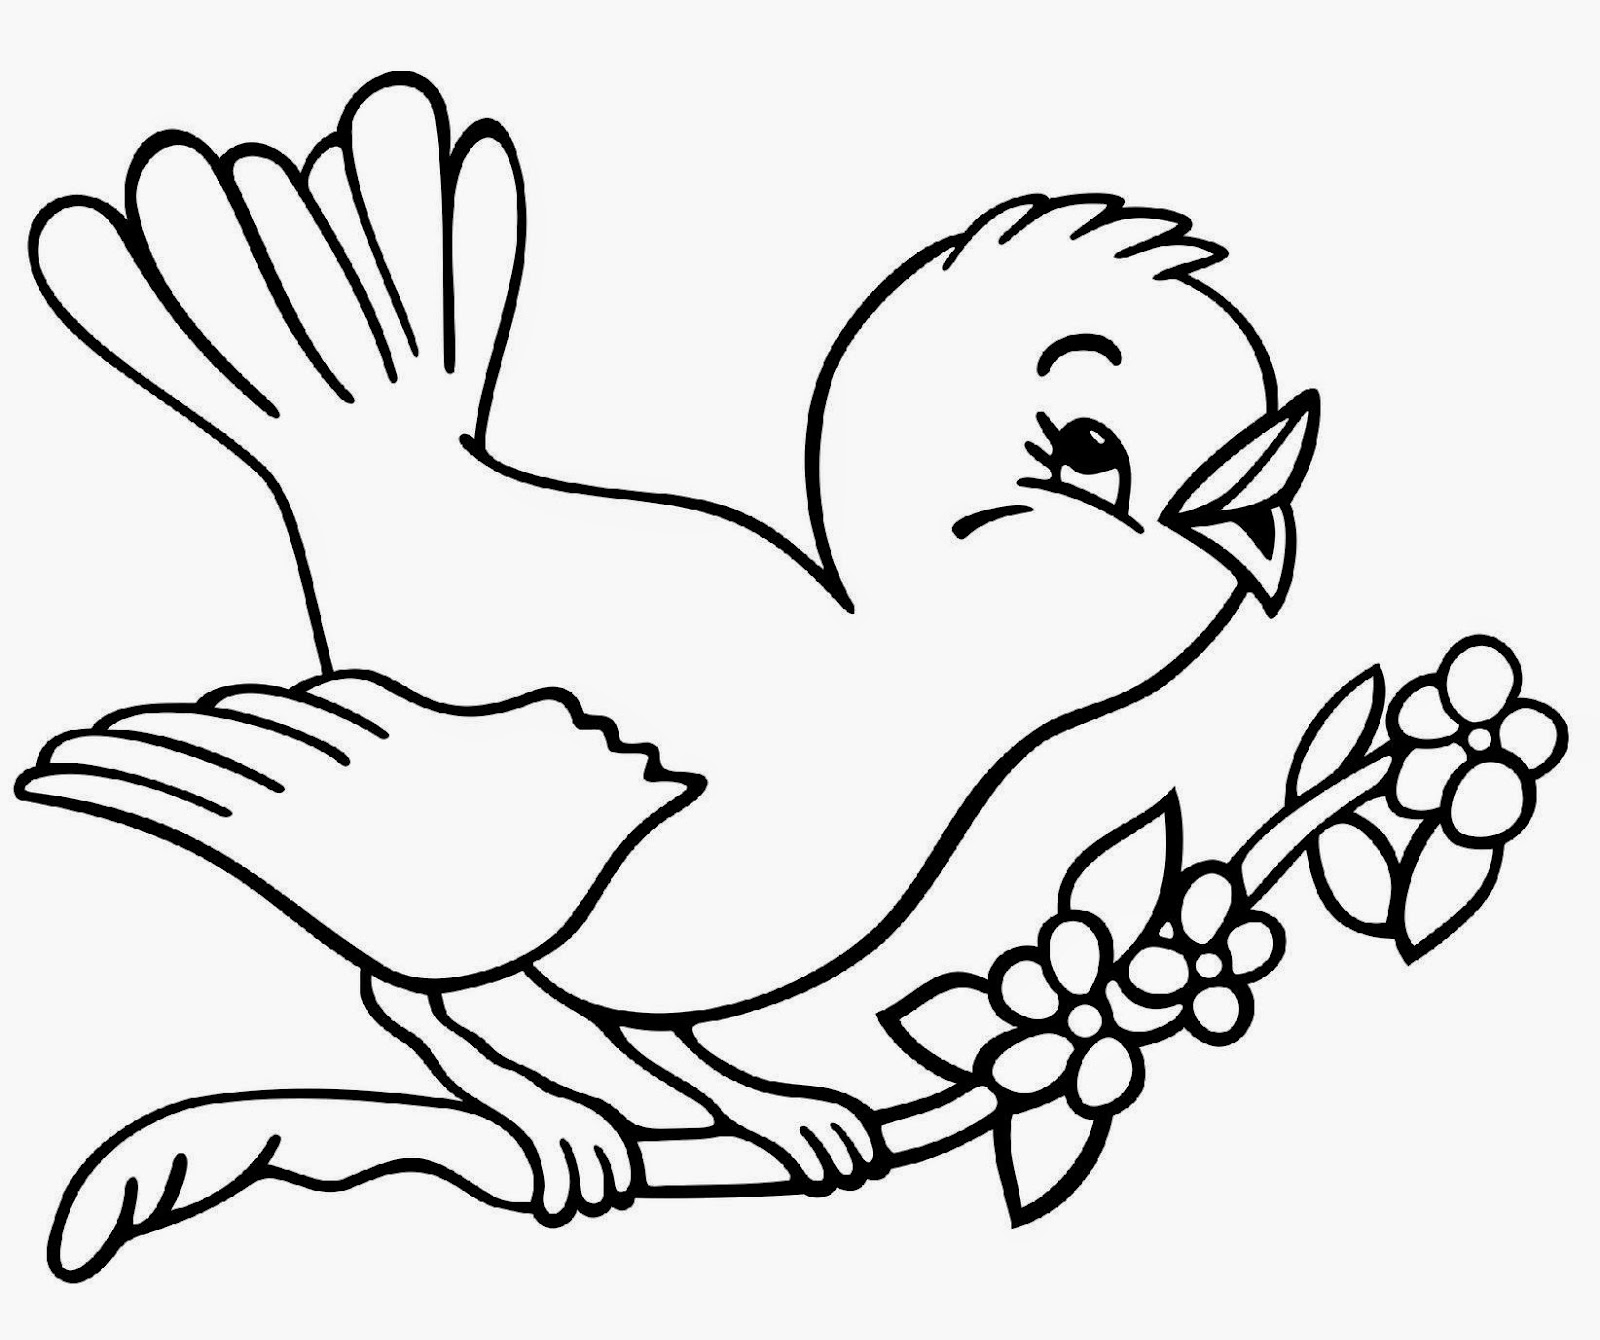 Handprint Coloring Page Coloringpages Grocots